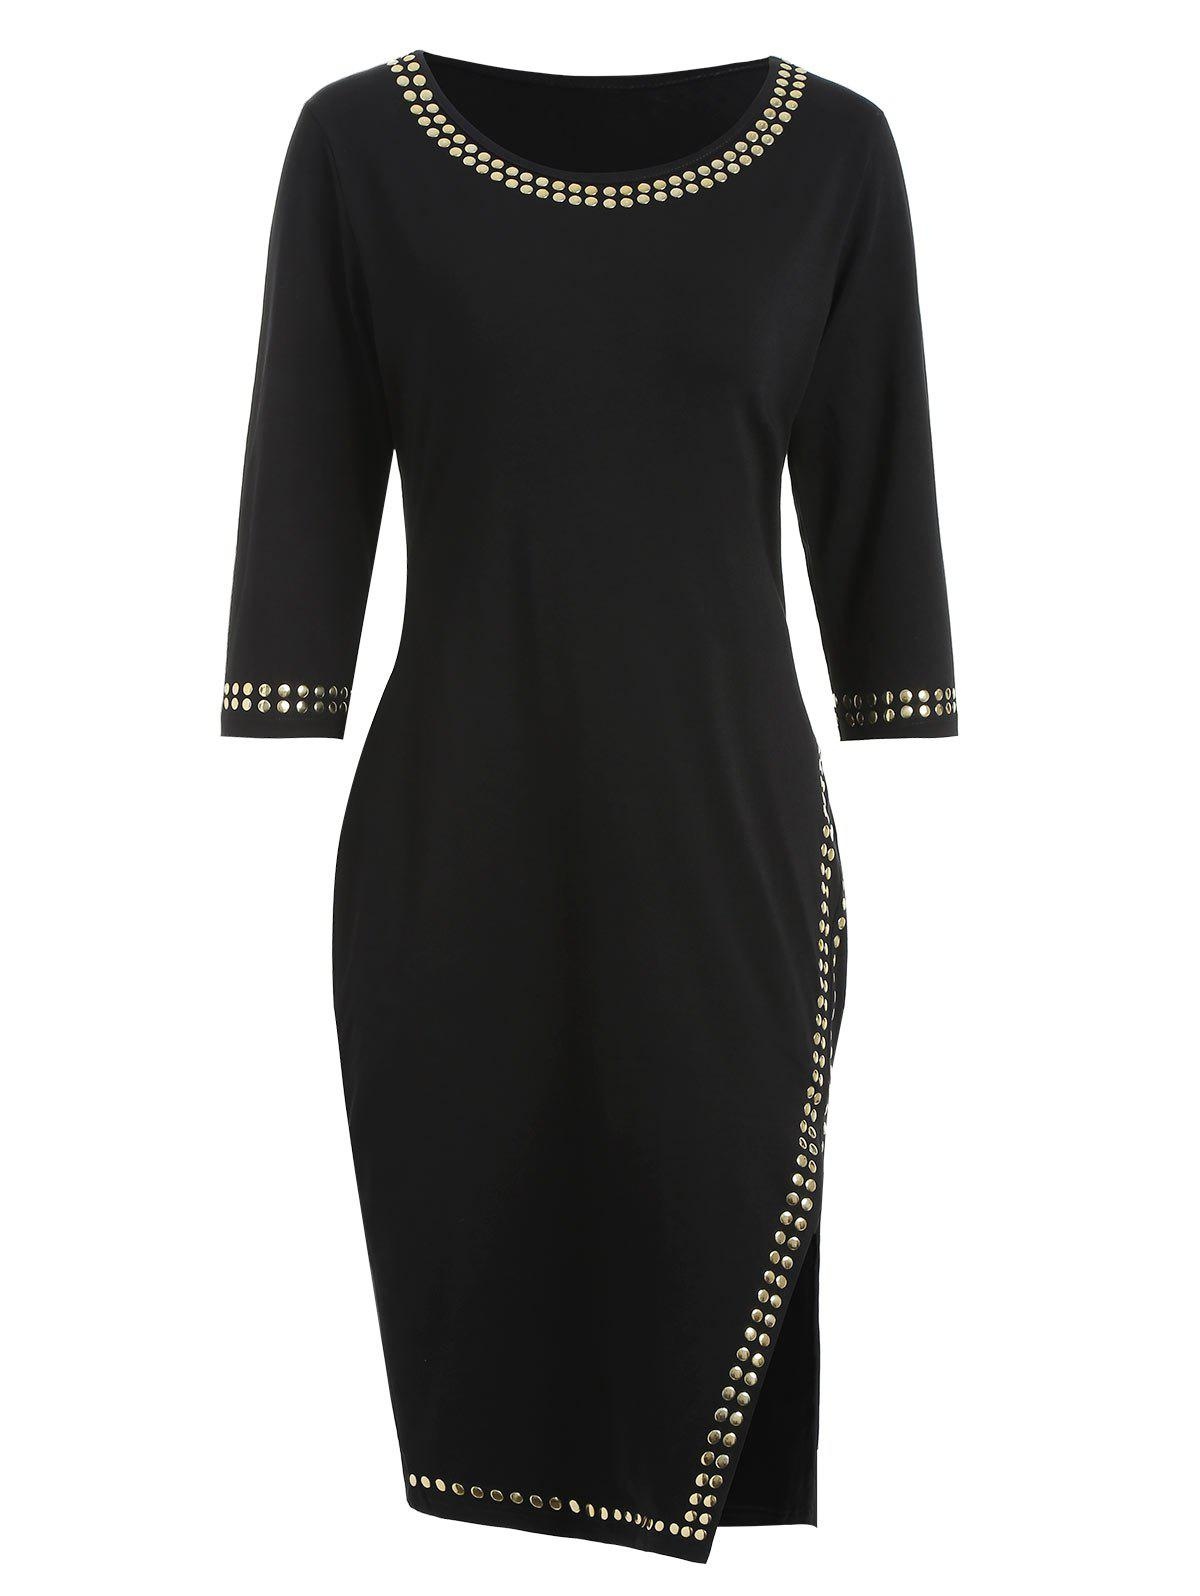 Rivet Embellished Front Slit Bodycon Dress, Black